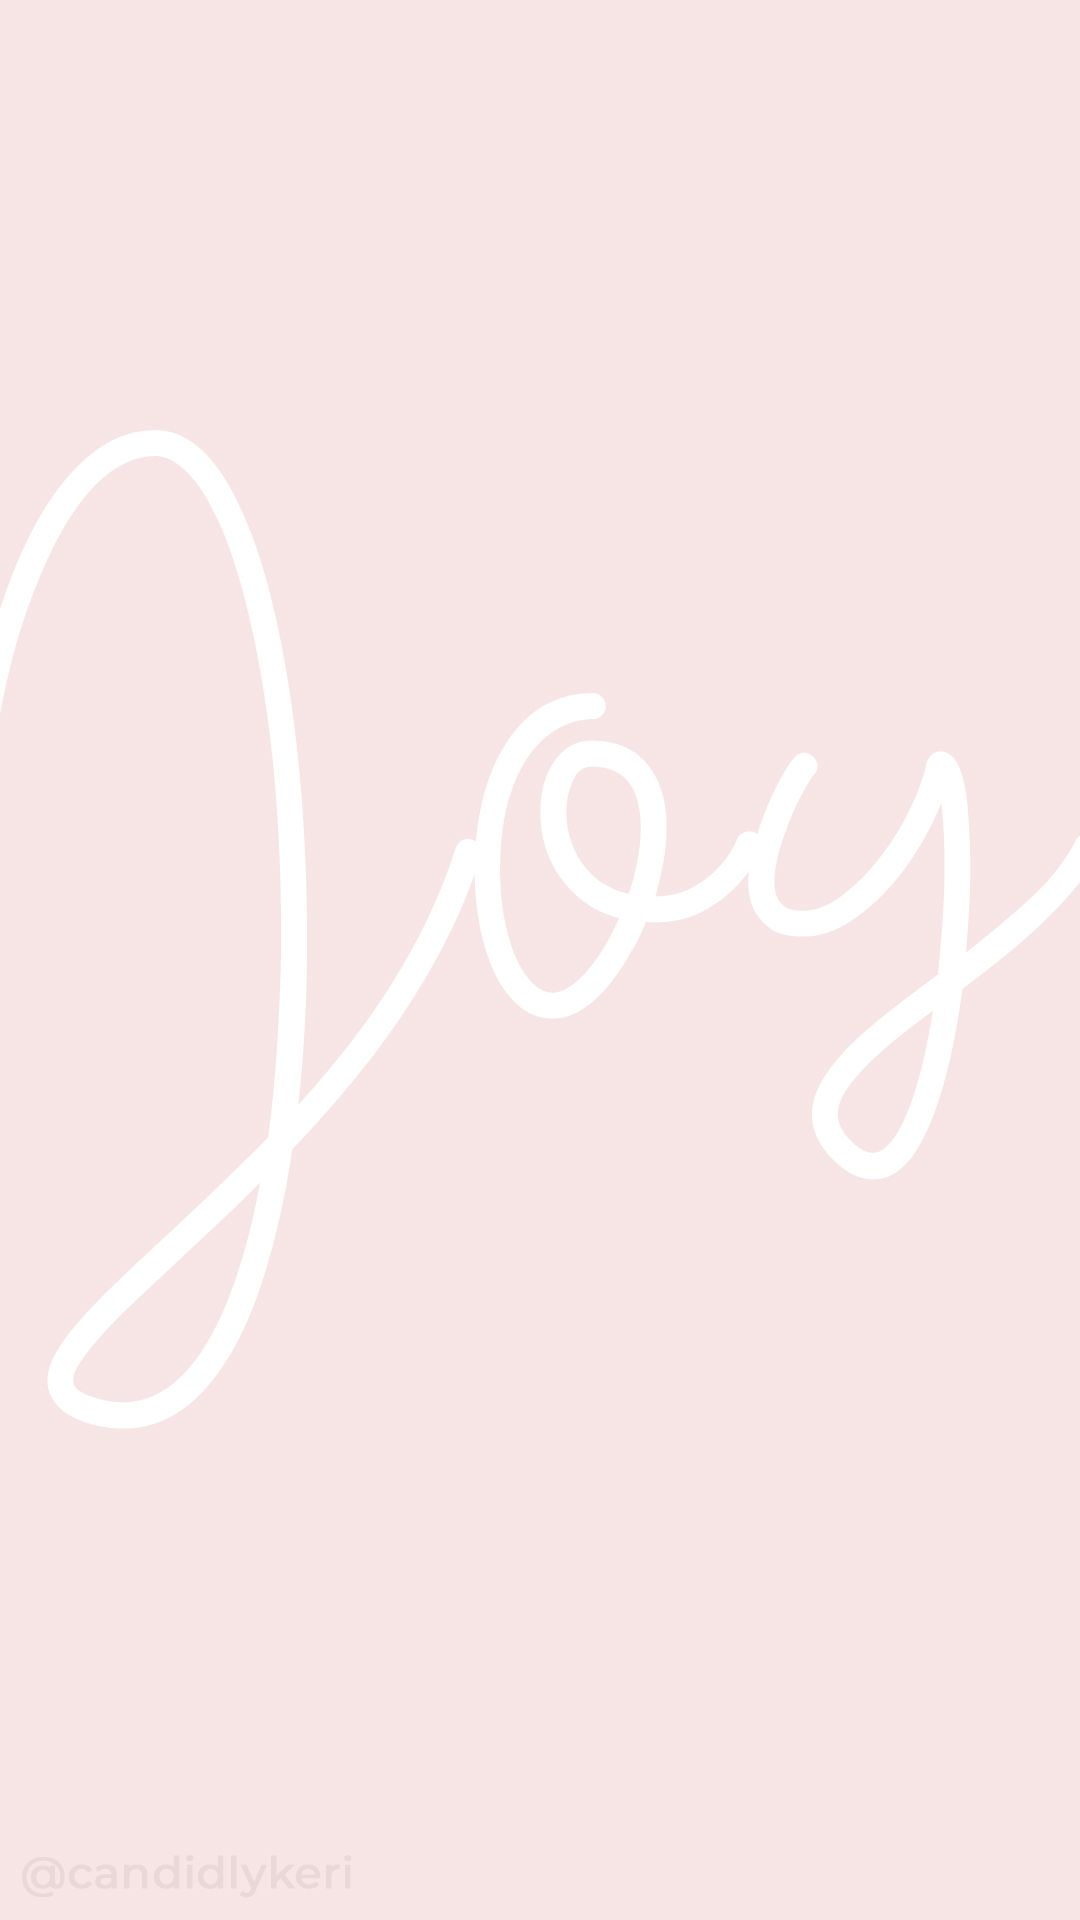 Joy Pink White Typography Inspirational Motivational Quote